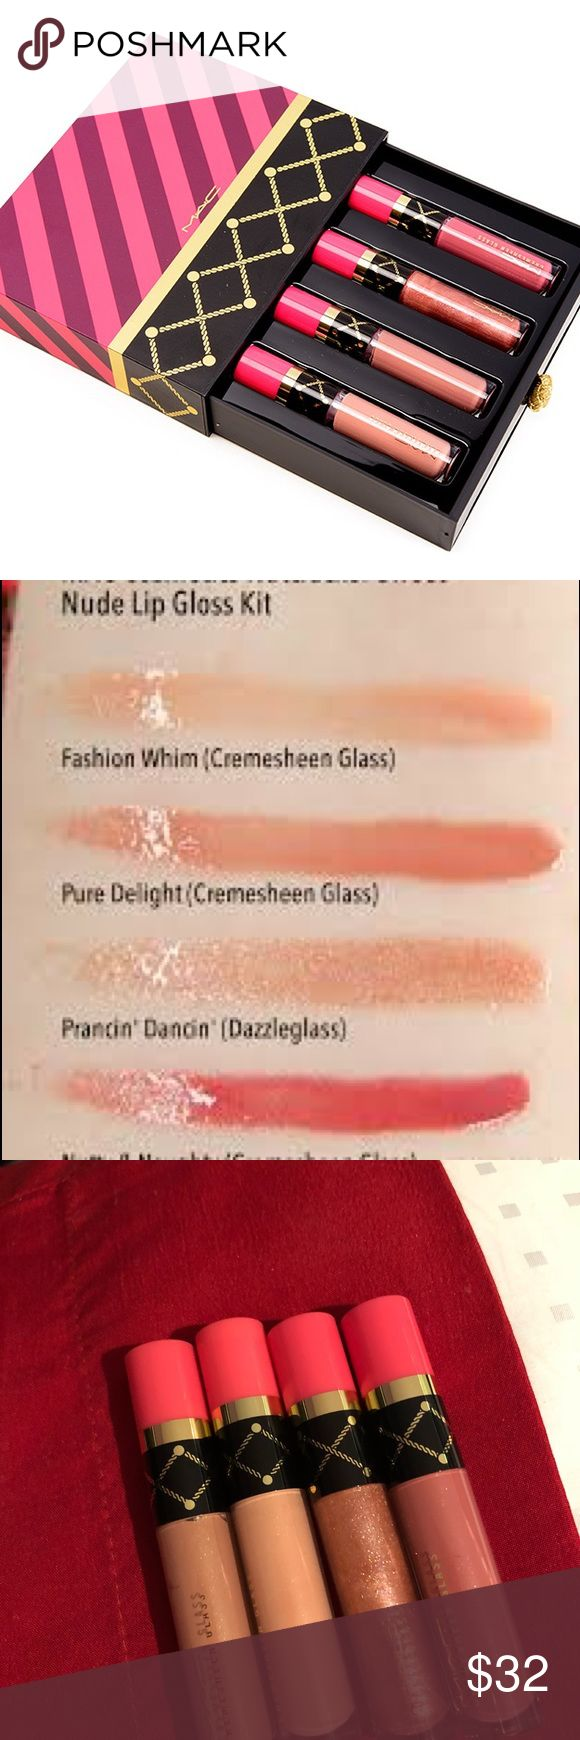 Mac nutcracker nude lip gloss set 100% authentic money back guarantee (posh protection) I purchased this during the 2016 holiday season collection so I do not have the receipt anymore. I have never used this limited edition set. This is the nutcracker sweet nude lipgloss set. The gloss sizes are *MINIS* The hard case is included! (Has a few nicks on it from being stored but like new) This set is no longer sold! Get it before it's gone forever MAC Cosmetics Makeup Lip Balm & Gloss